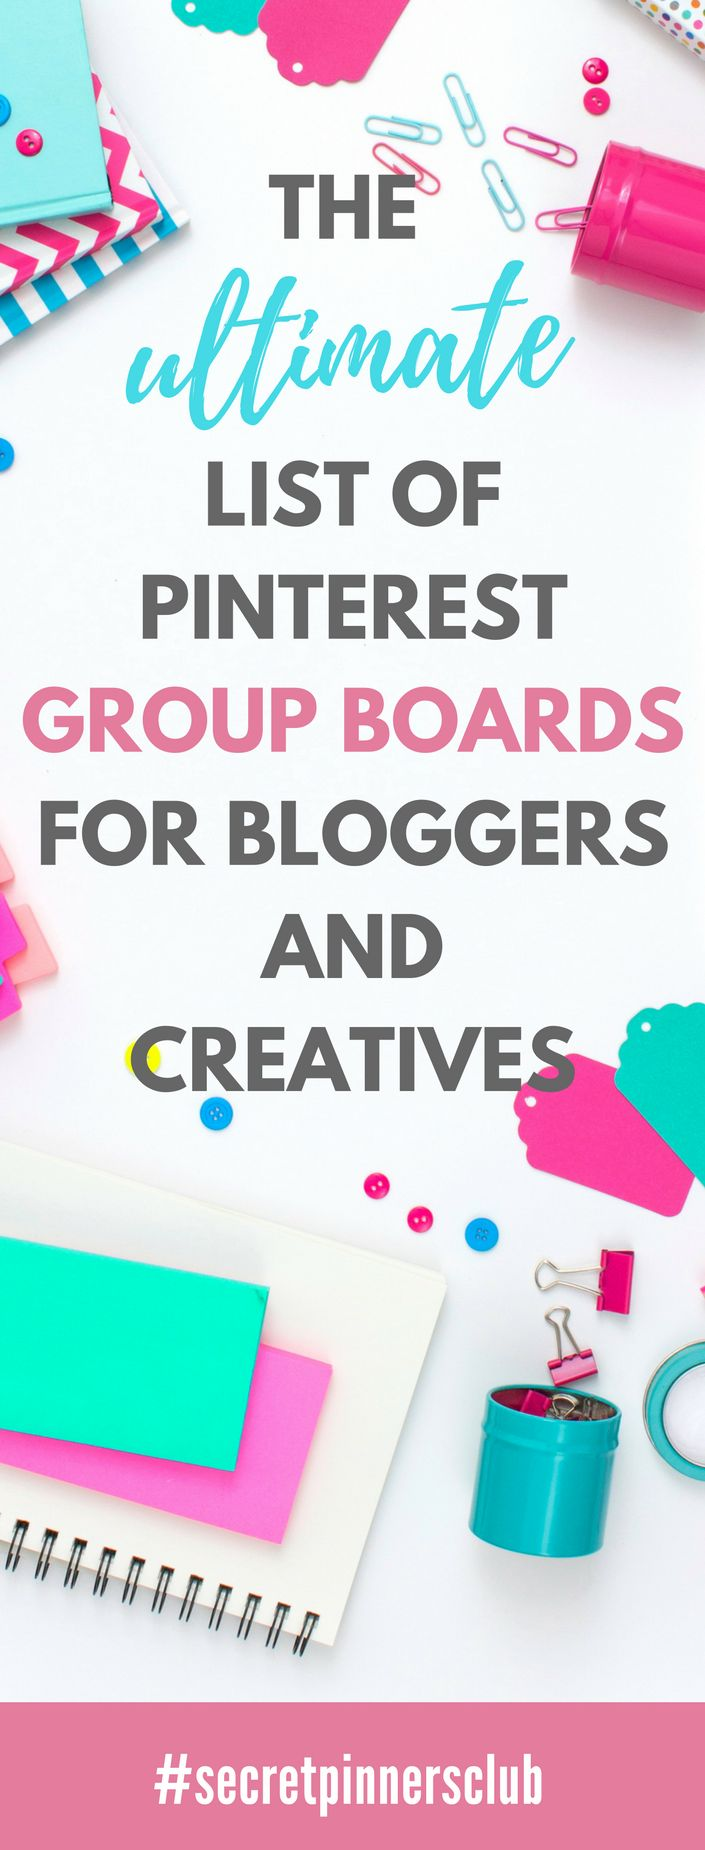 Looking for the best Pinterest group boards to join to get your pins in front of thousands of people? This list has over 25 of the best Pinterest group boards for bloggers and creatives.